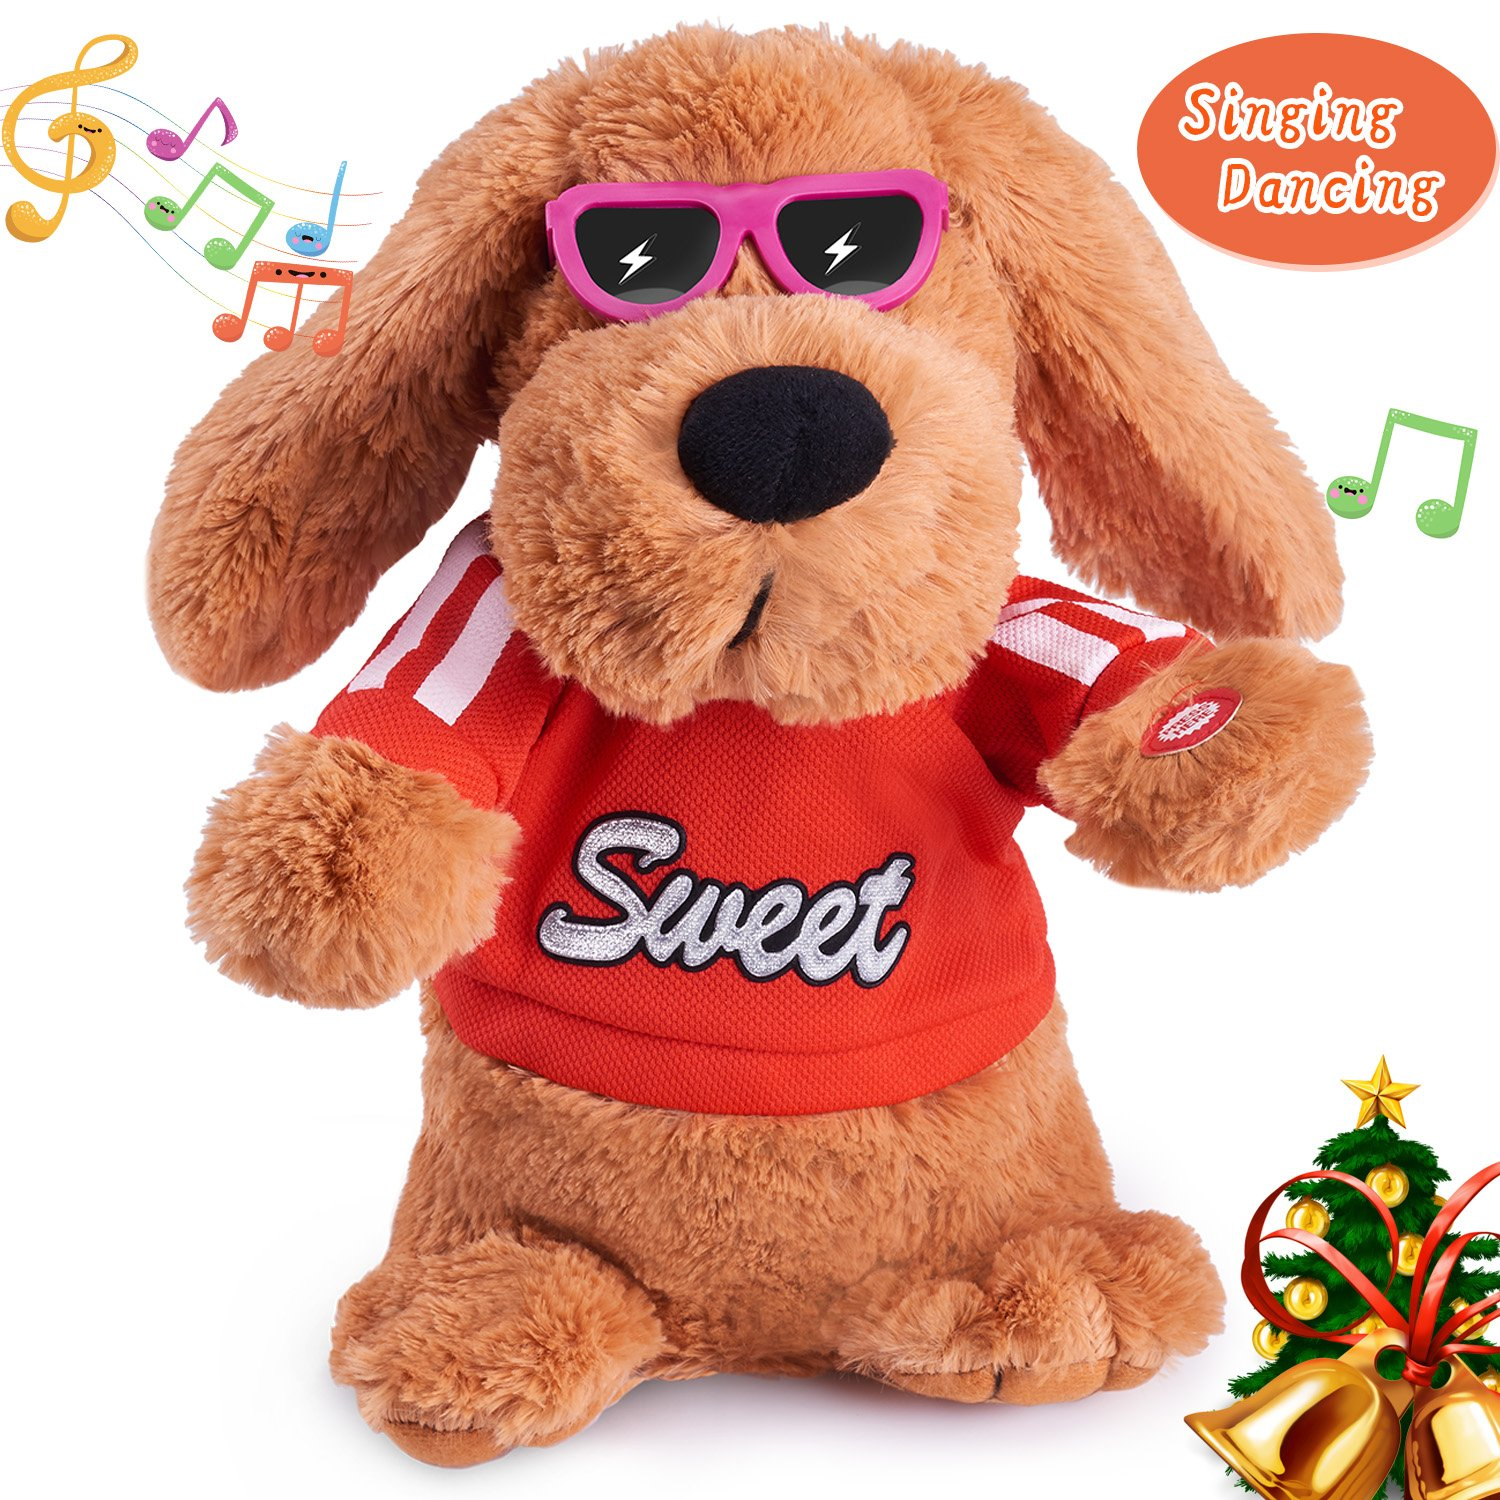 Musical Dancing Singing Electronic Dog Interactive Puppy Pet Toy Animated Pet , Flying Ears, Rock Body, Singing 6 Songs Plush Dog Toys for Girls Boys Kids Toddlers Baby Toy Gifts by Marsjoy